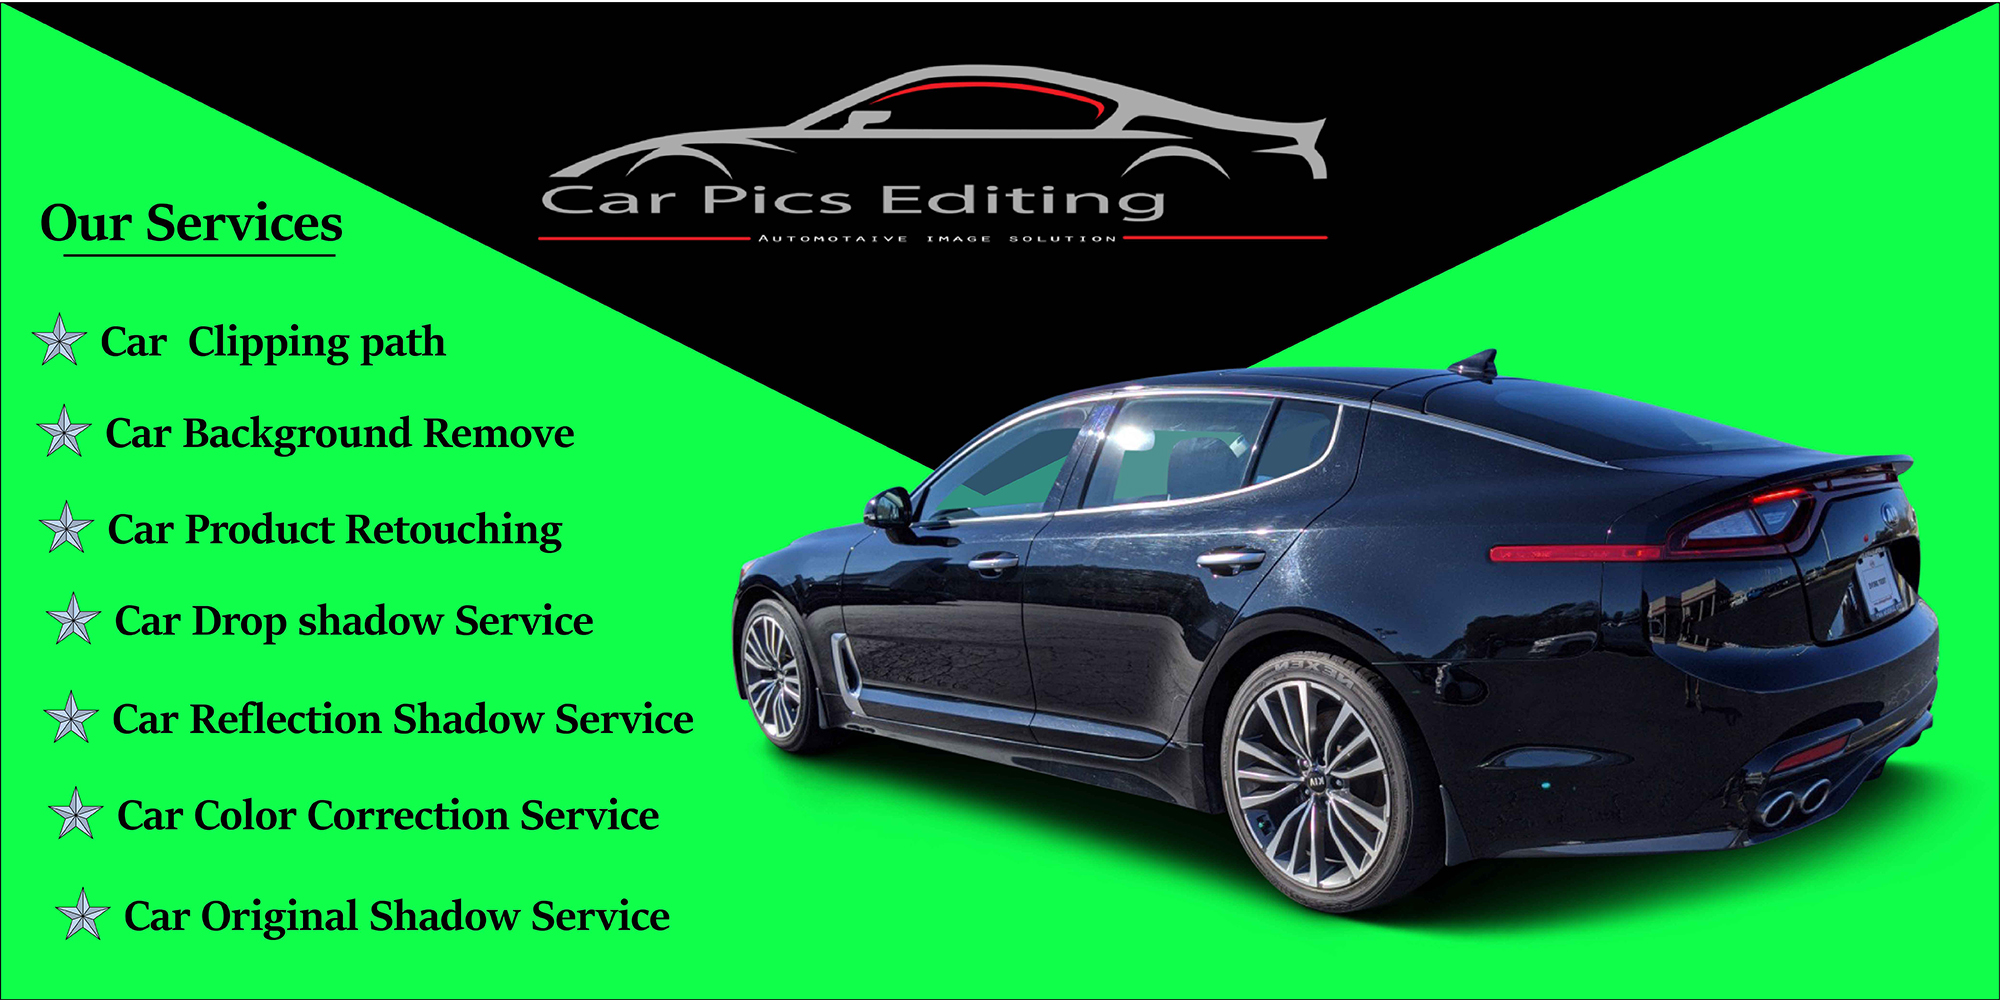 Car Transparent Background Is Bound To Make an Impact In Your Business-Car pics editing 4